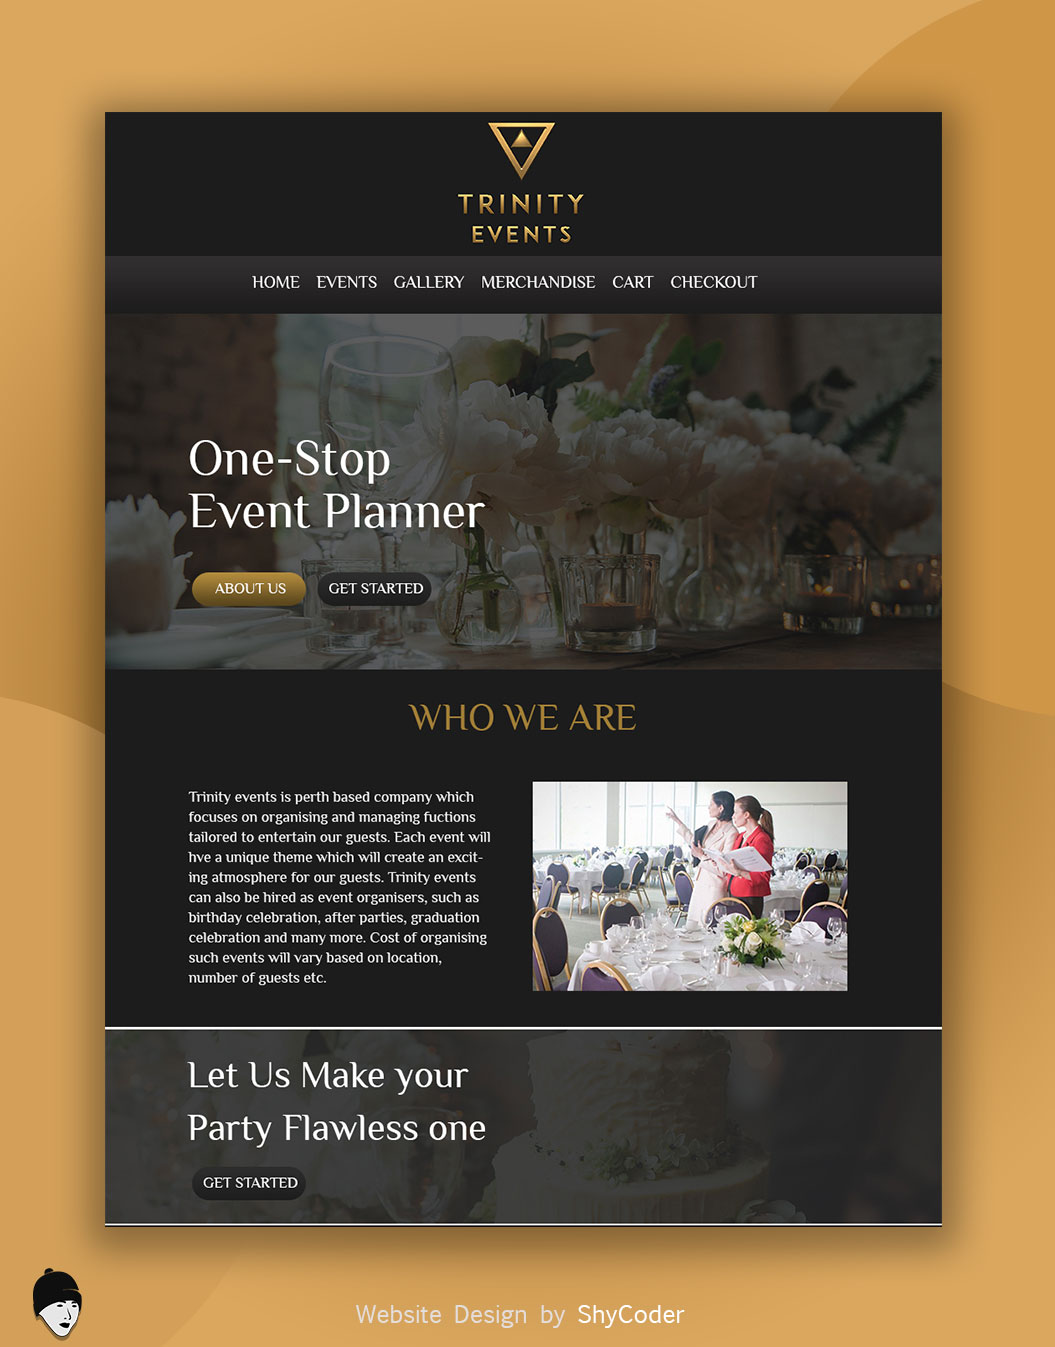 Trinity Events Website Design